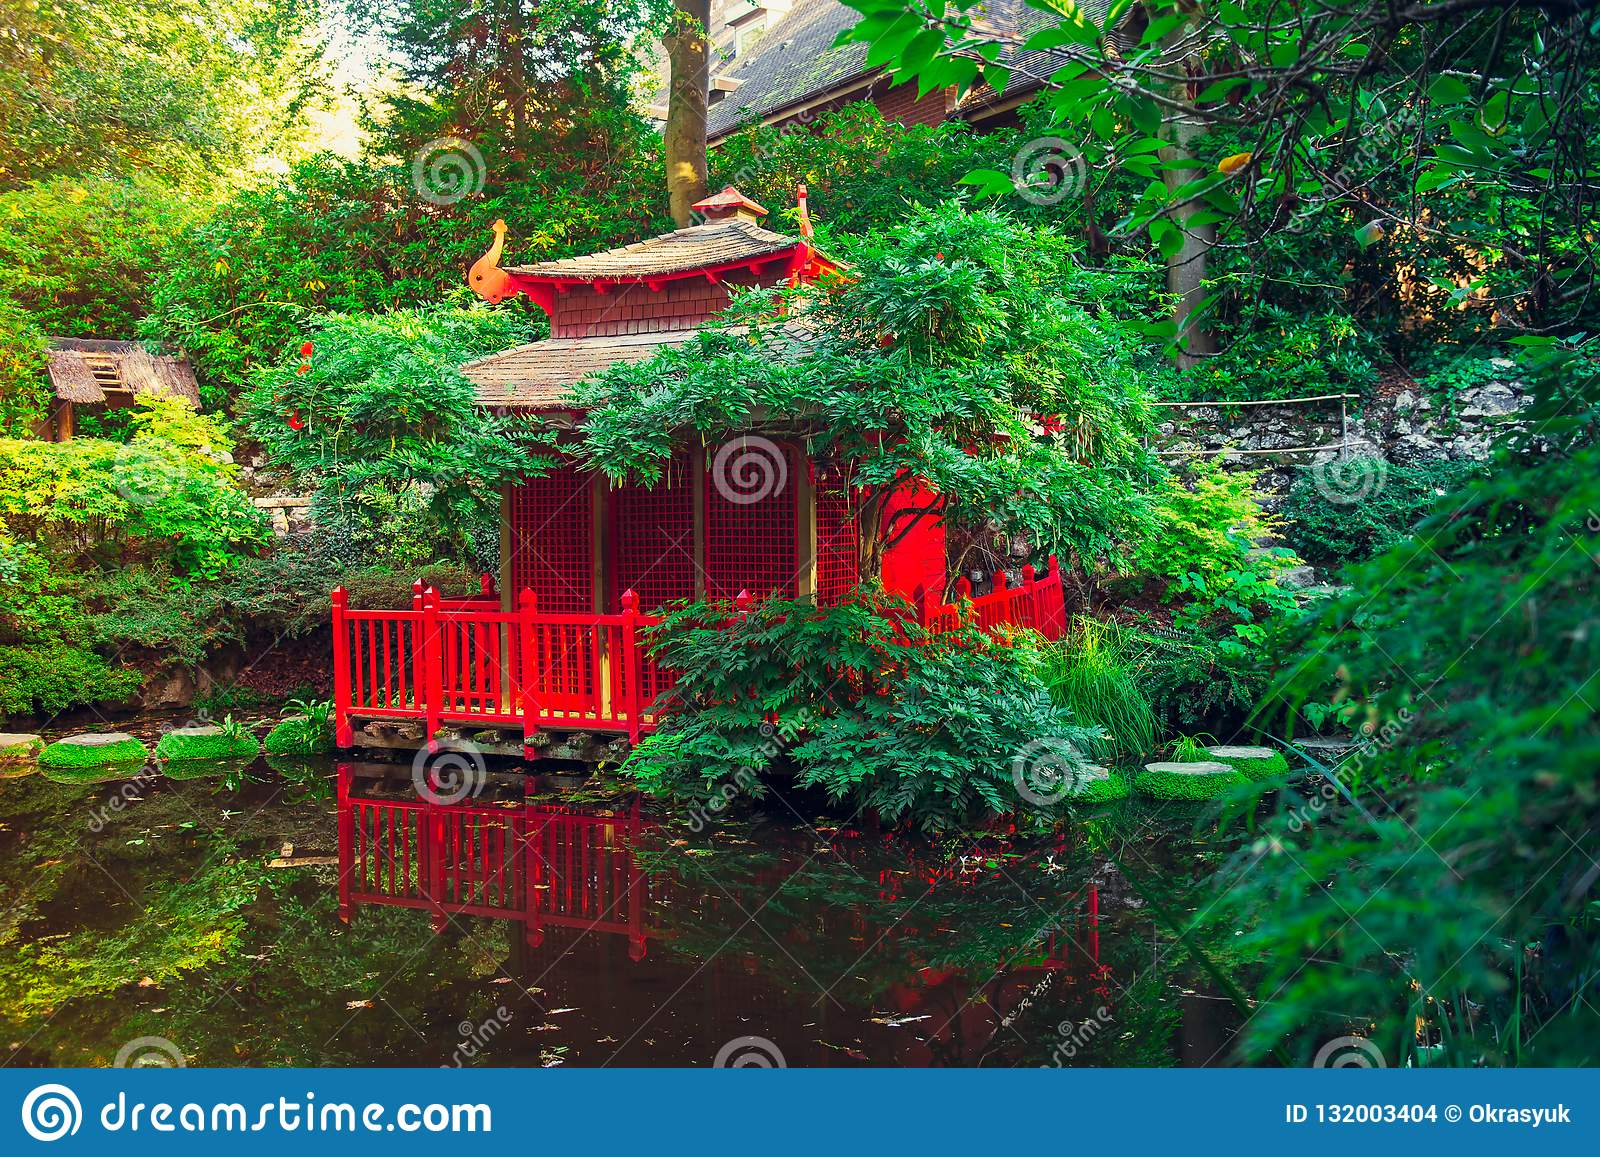 Landscape With Red Wooden House In The Beautiful Japanese Style